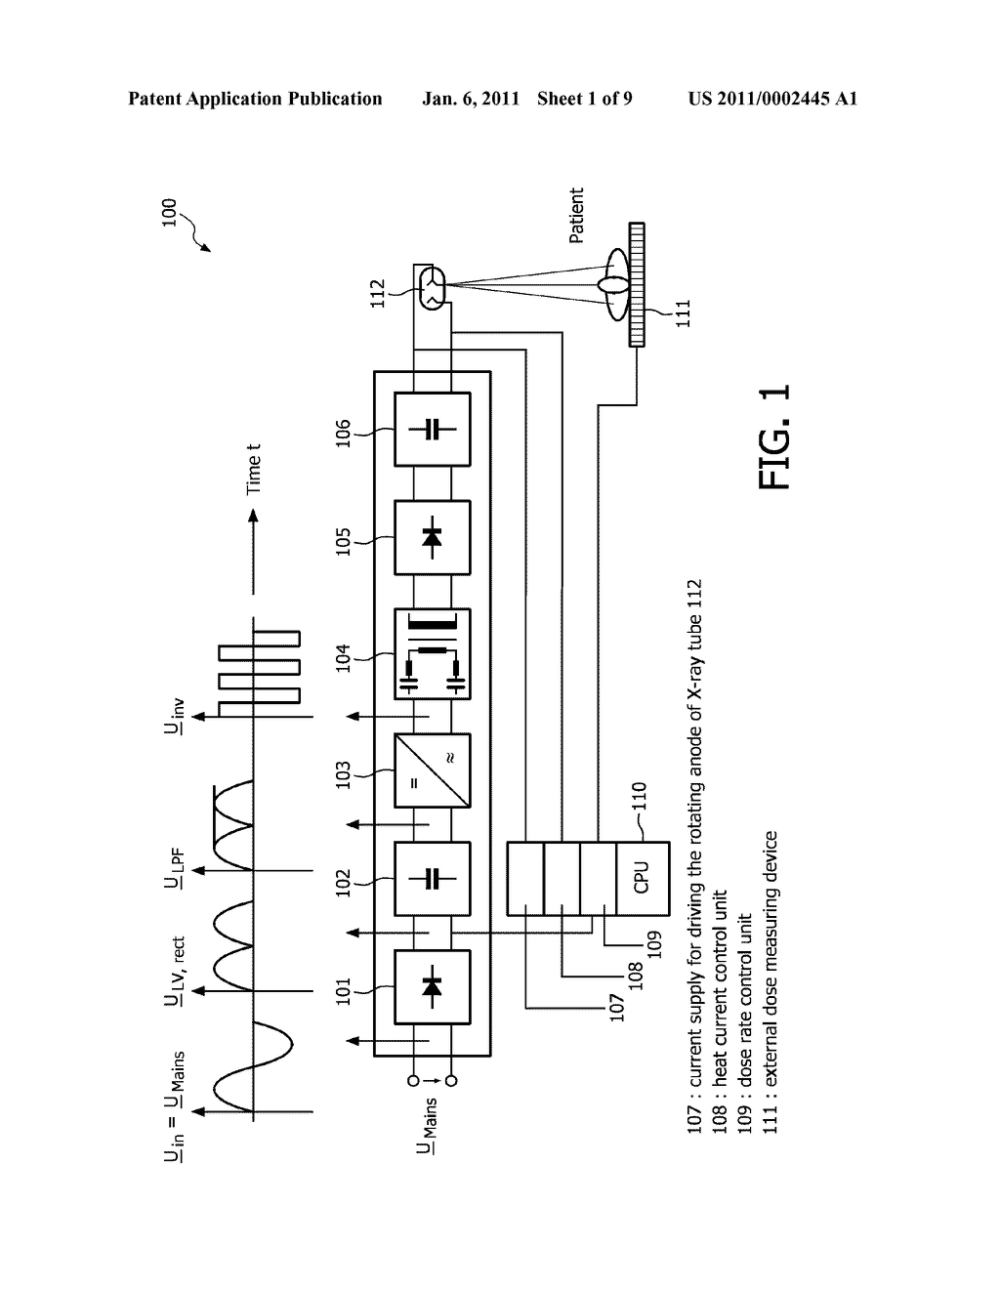 medium resolution of  power converter circuit in particular a dc dc converter for use in a high voltage generator circuitry of a modern computed tomography device or x ray